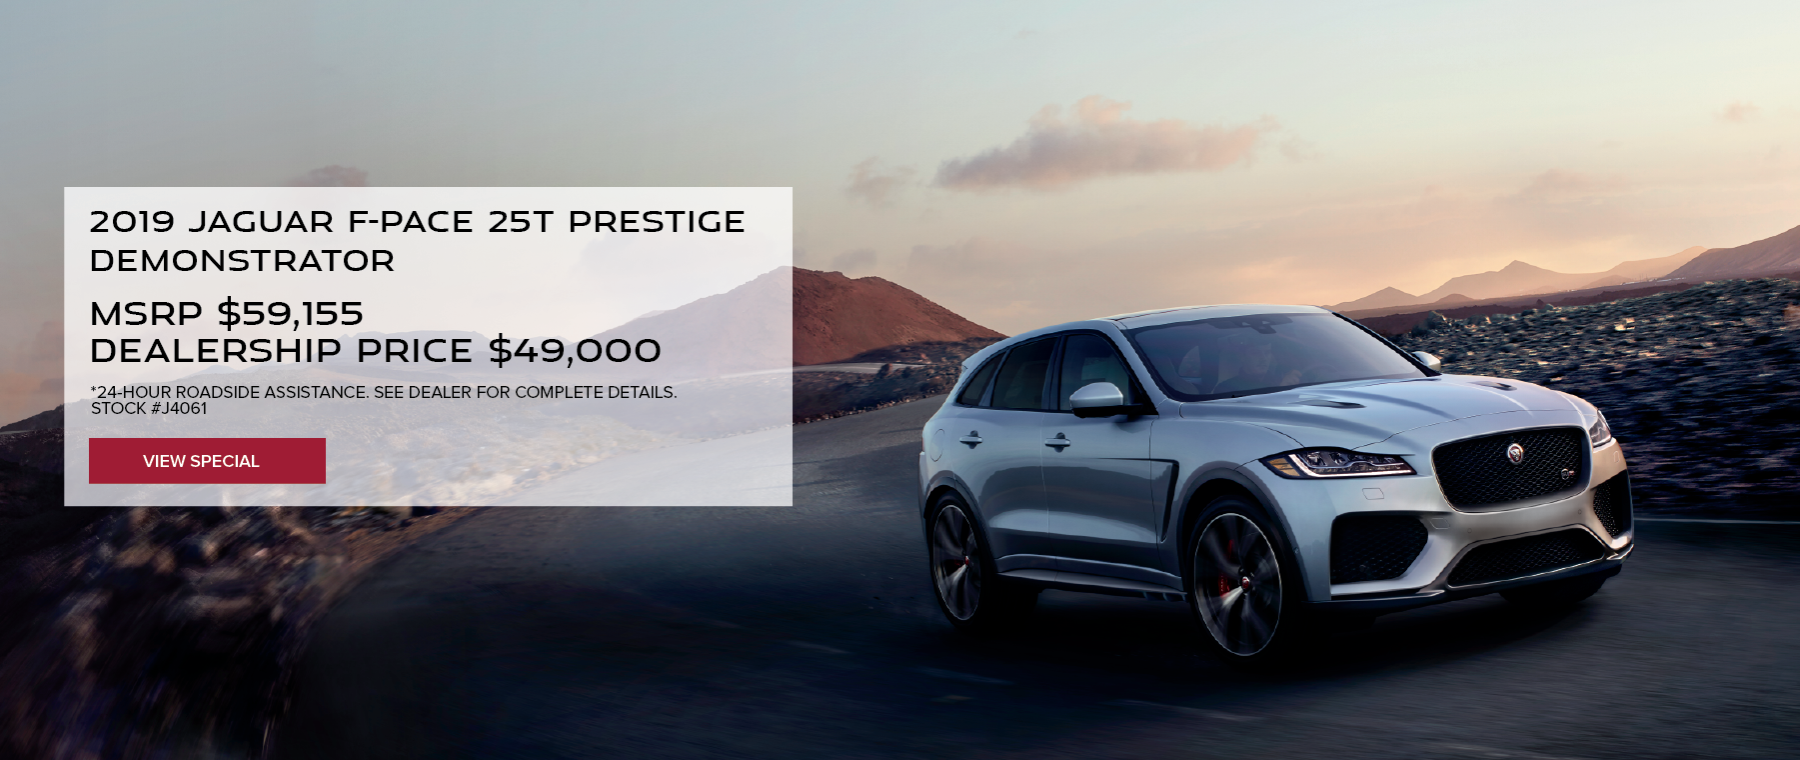 Grey 2019 Jaguar F-PACE 25t Prestige on road with mountians in distance. MSRP $59,155 Dealership Price $49,000 Stock # J4061 . Click to view vehicle. See dealer for complete details.